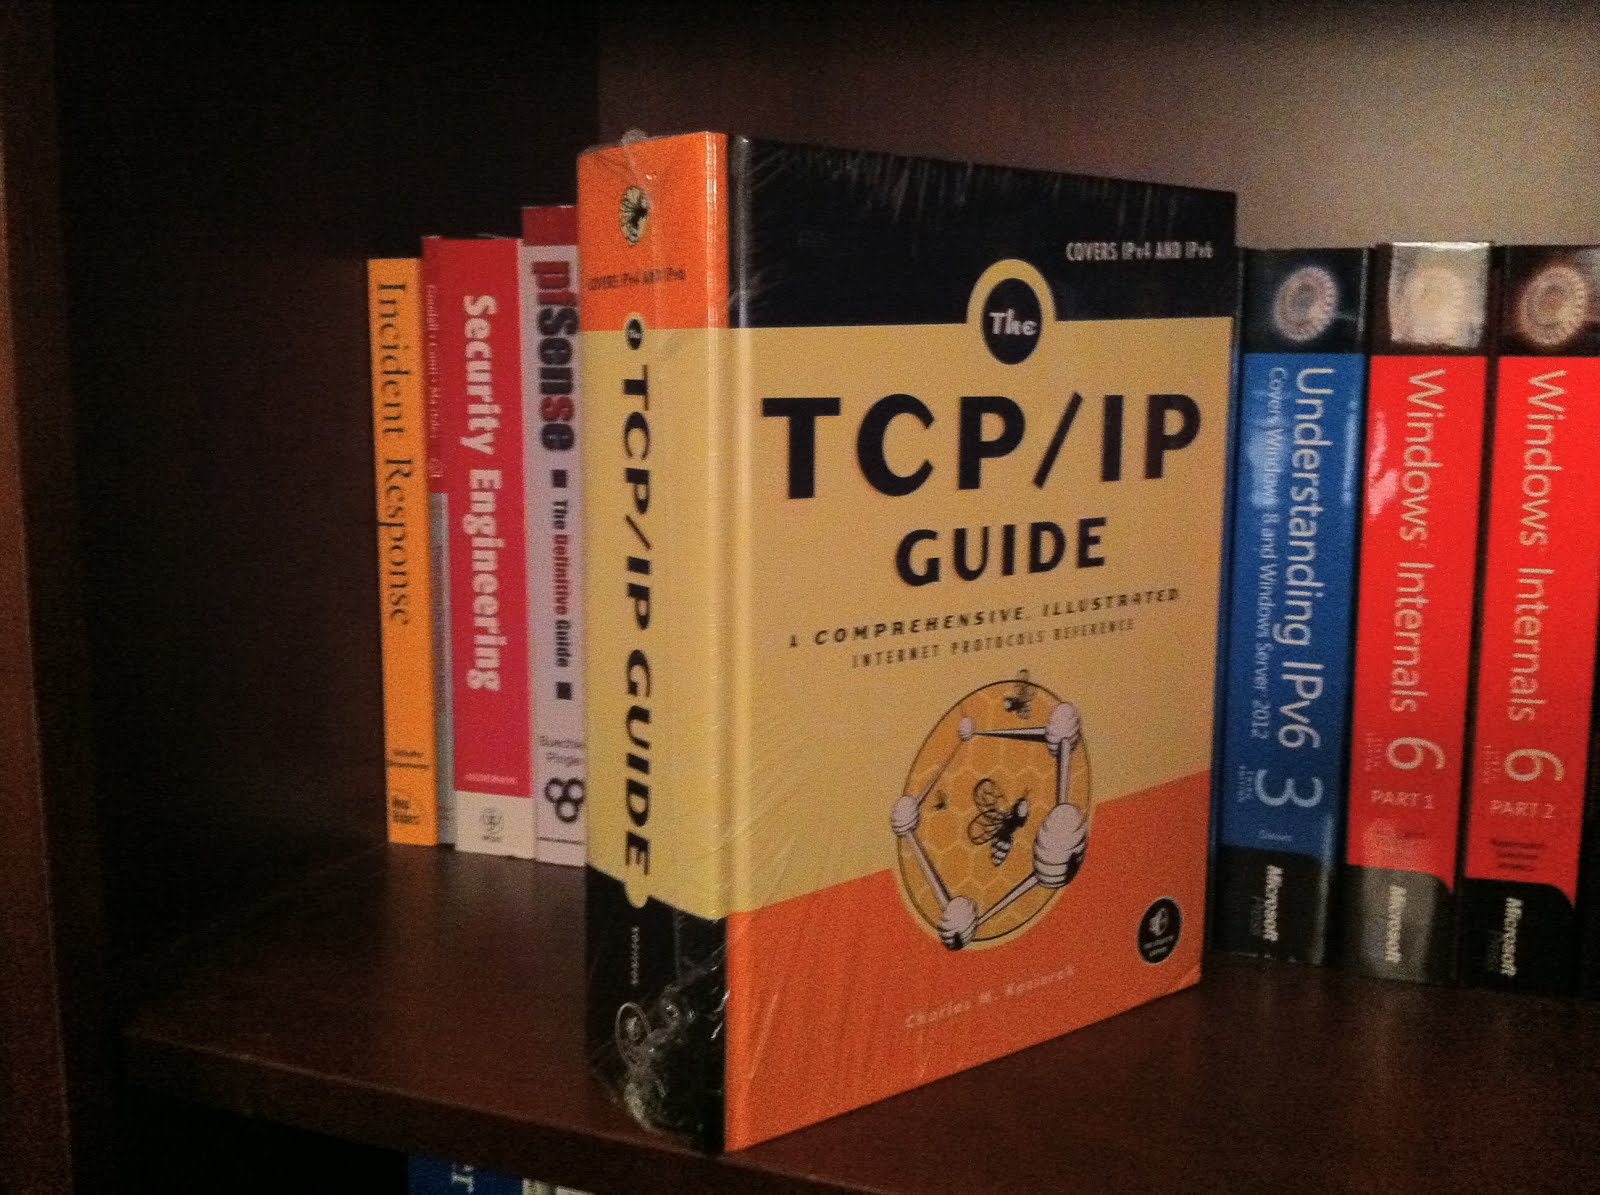 TaoSecurity: How to Win This TCP/IP Book